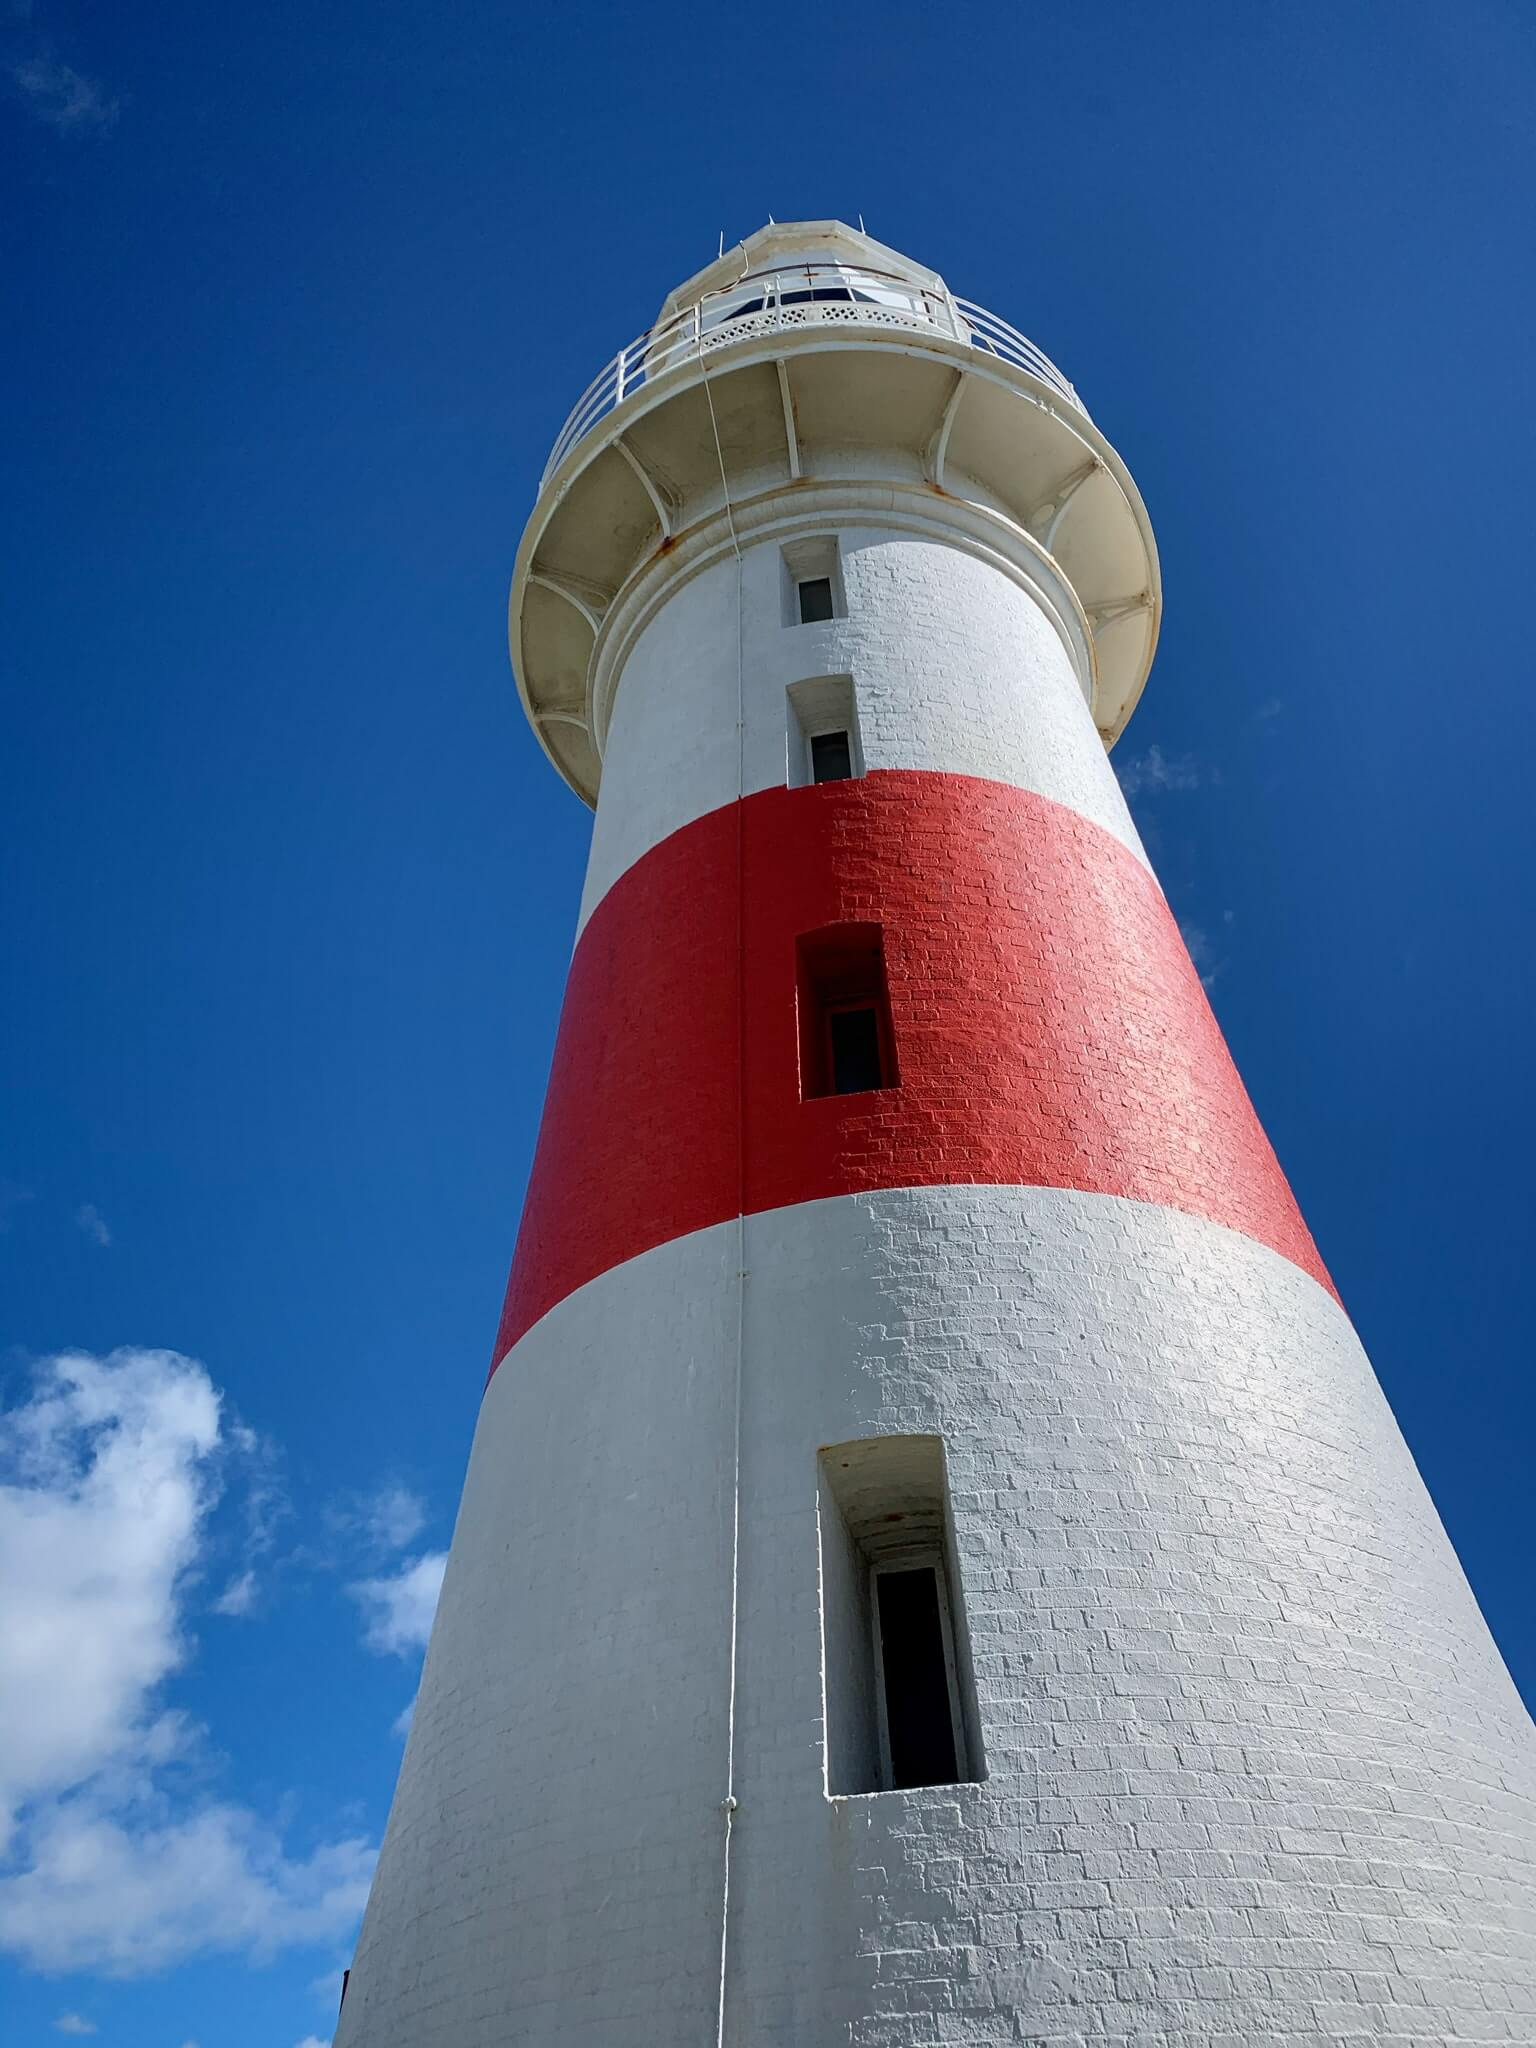 photo of the Low Head lighthouse in Tasmania